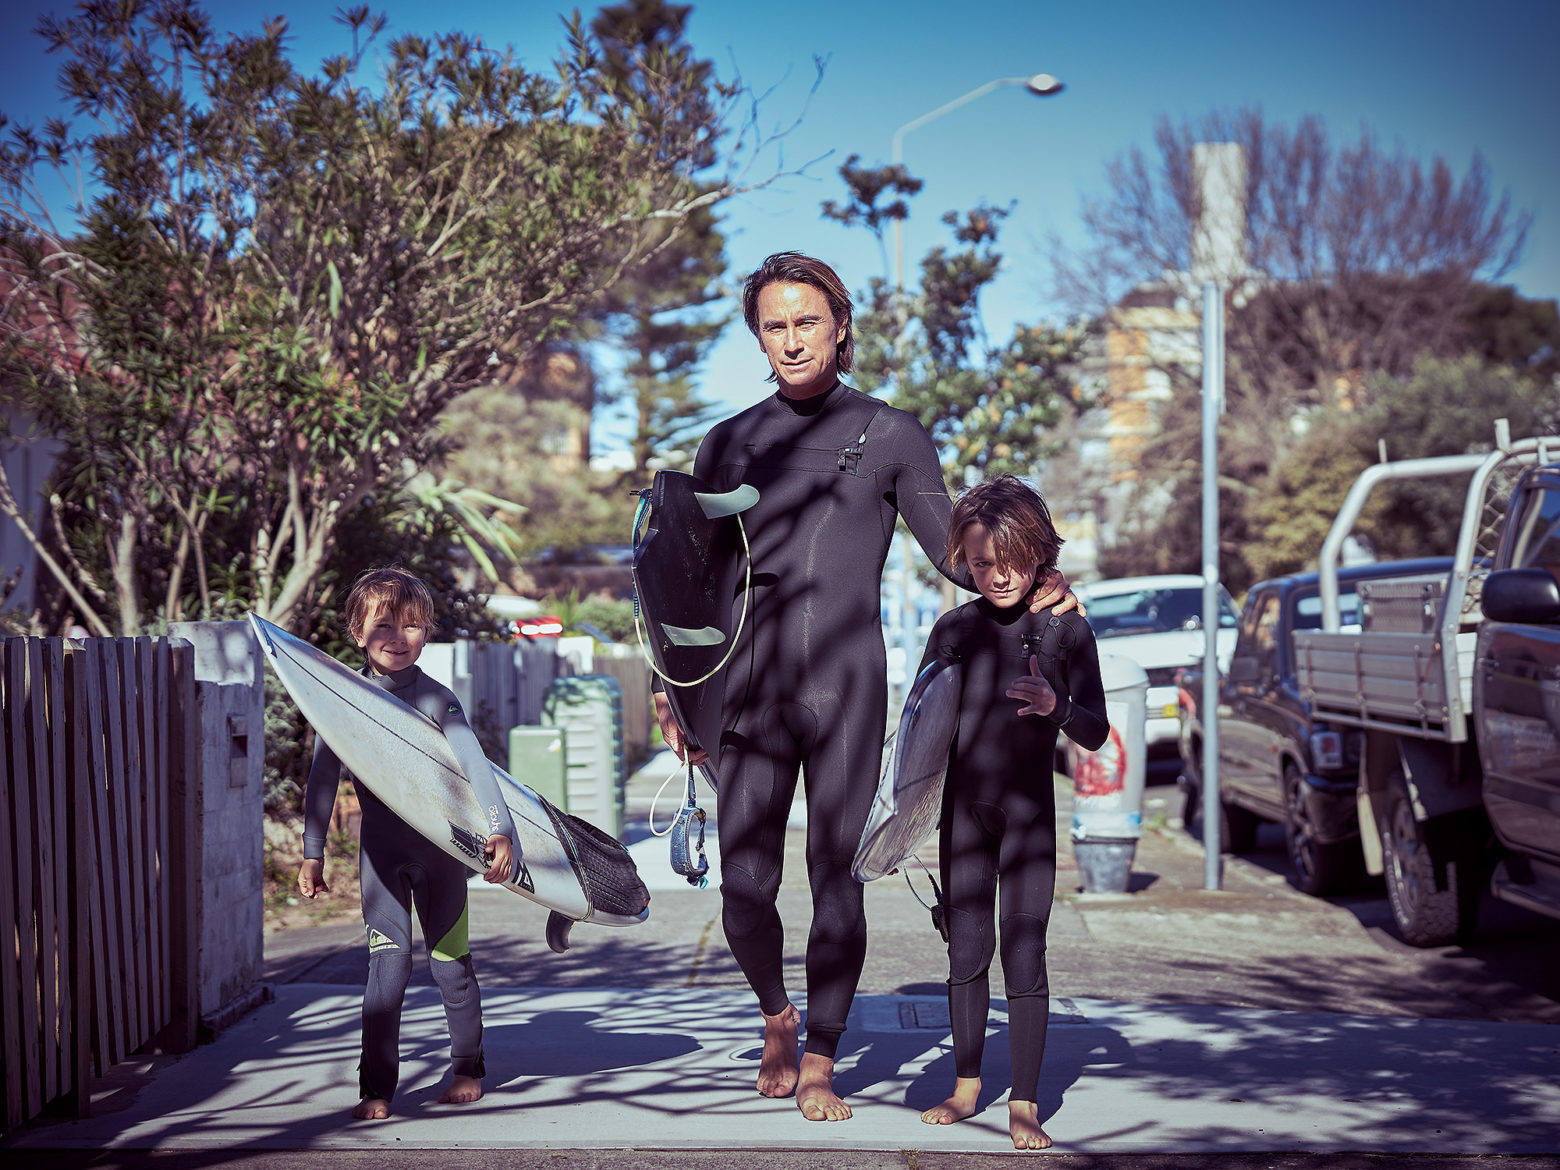 Uge and his family are surfers first, passionate about the ocean